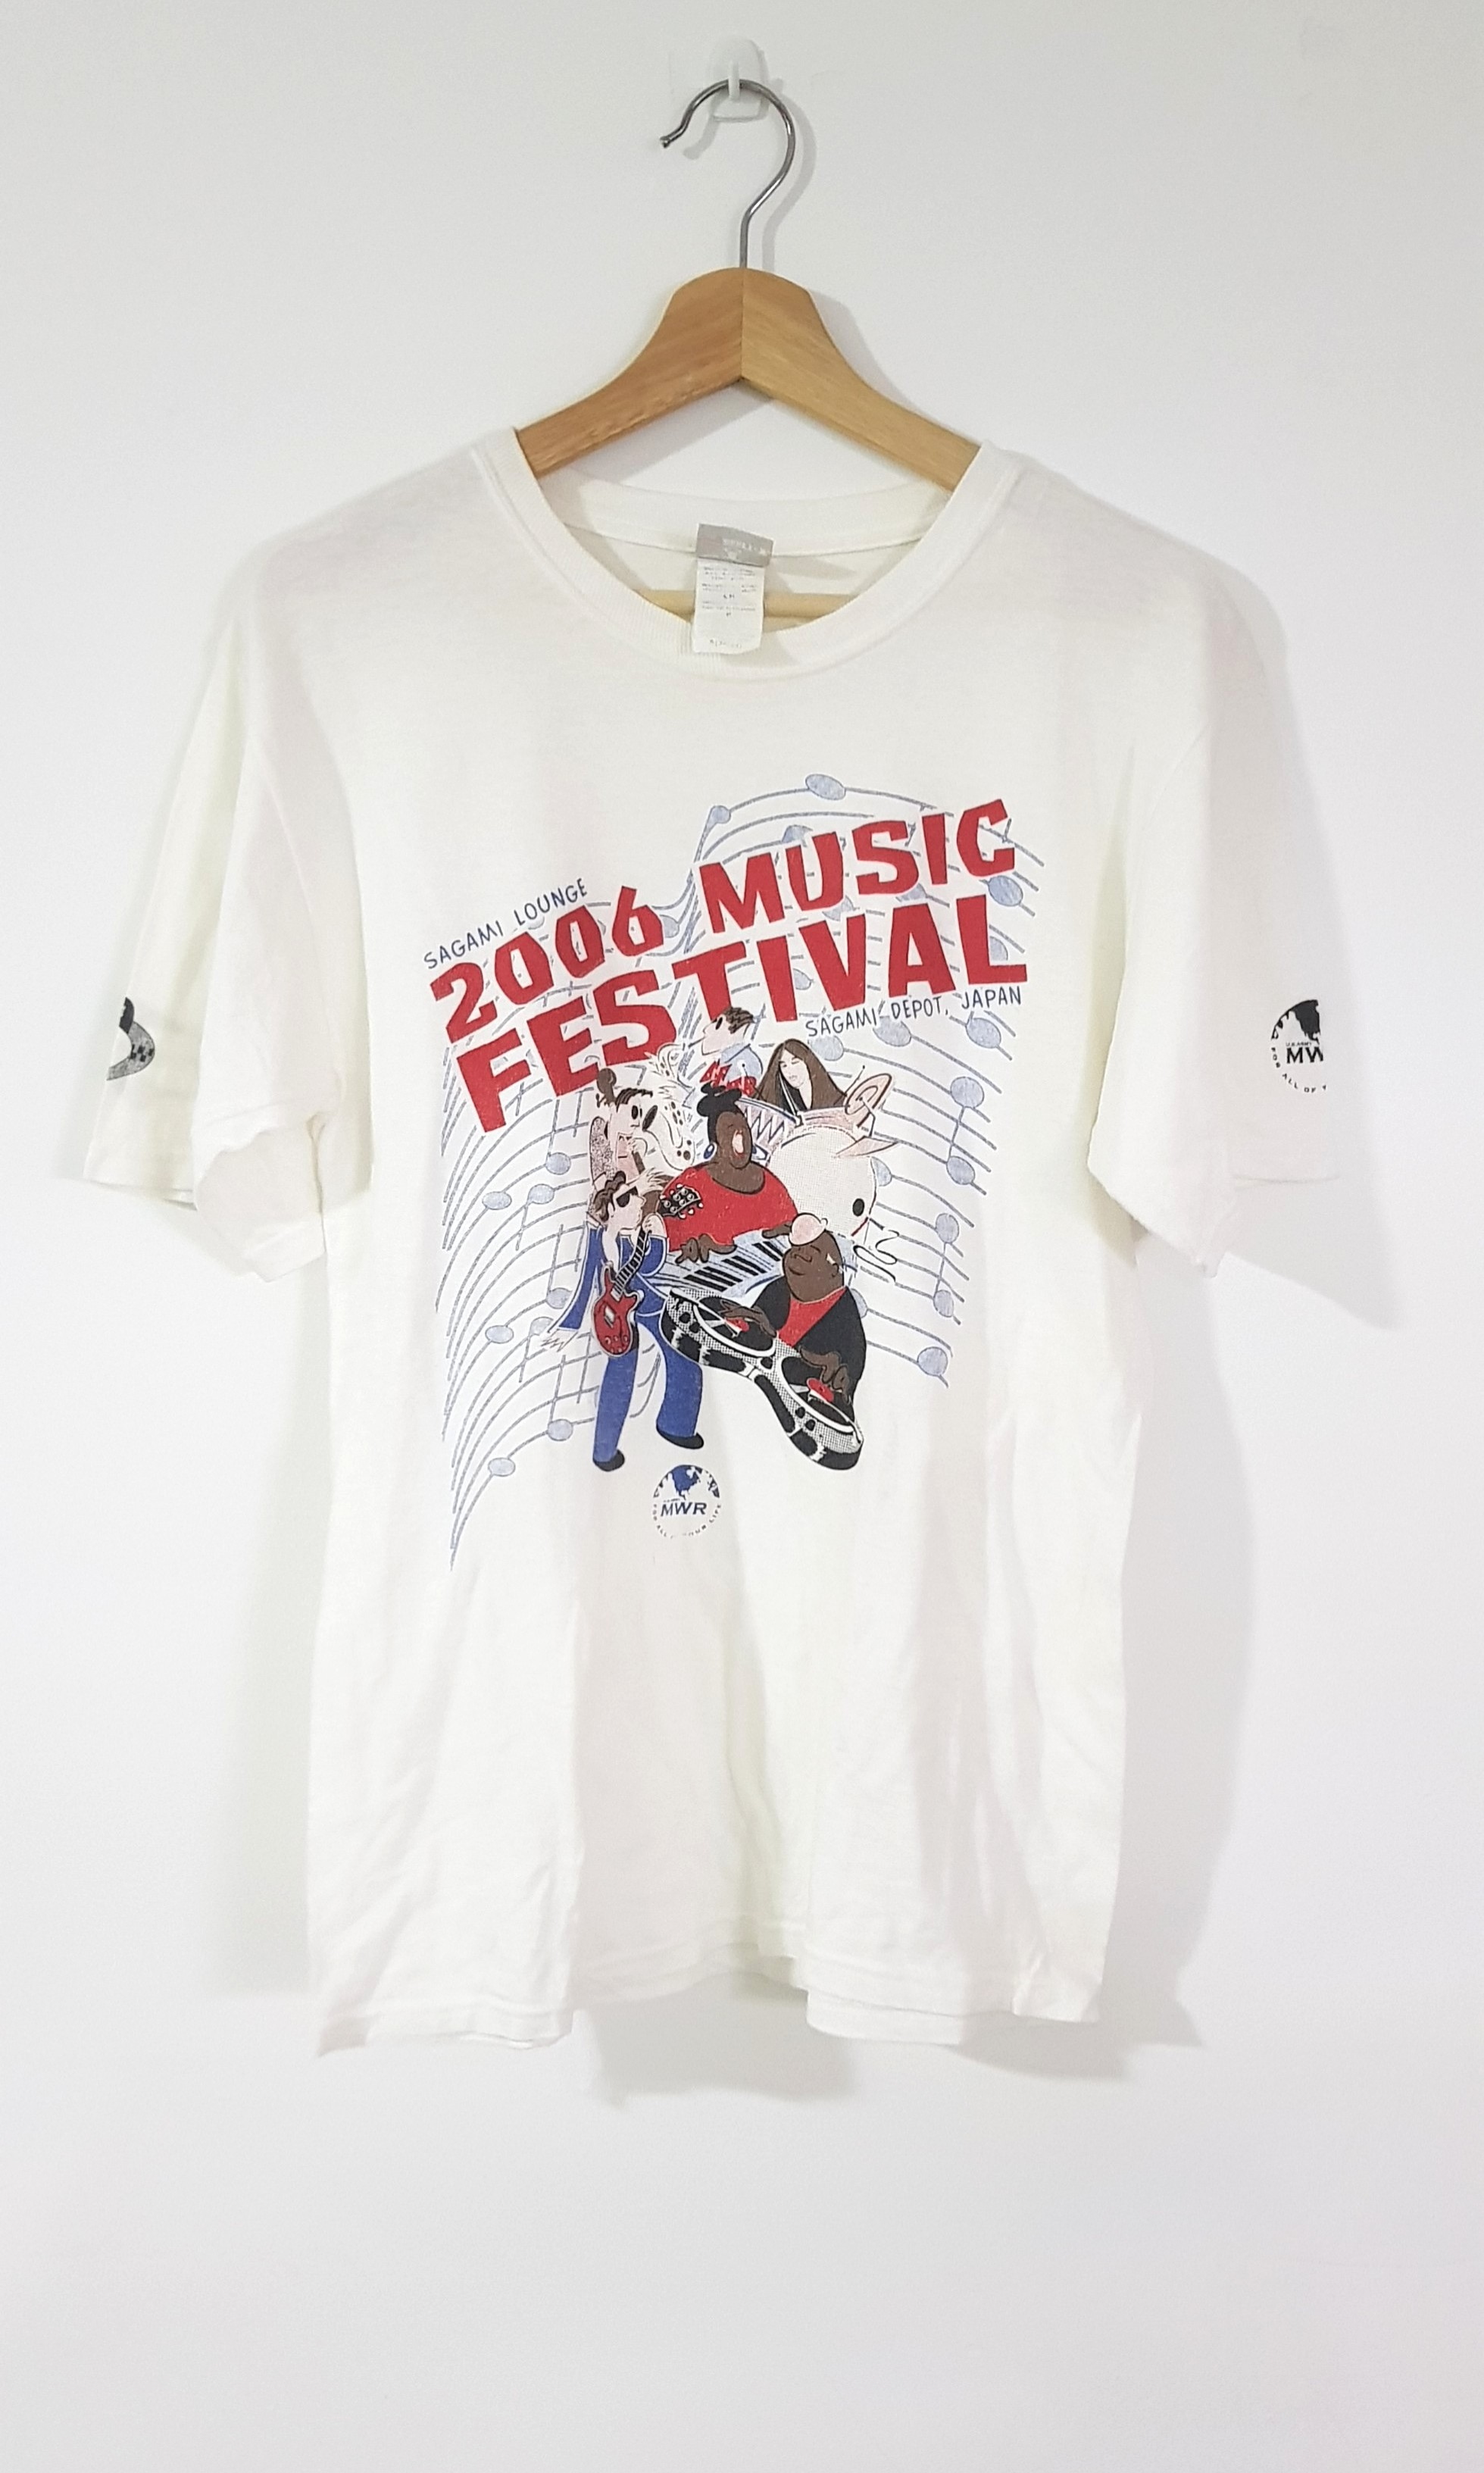 5a1760f9 Vintage Japan Music Festival 2006 Tshirt, Men's Fashion, Clothes ...